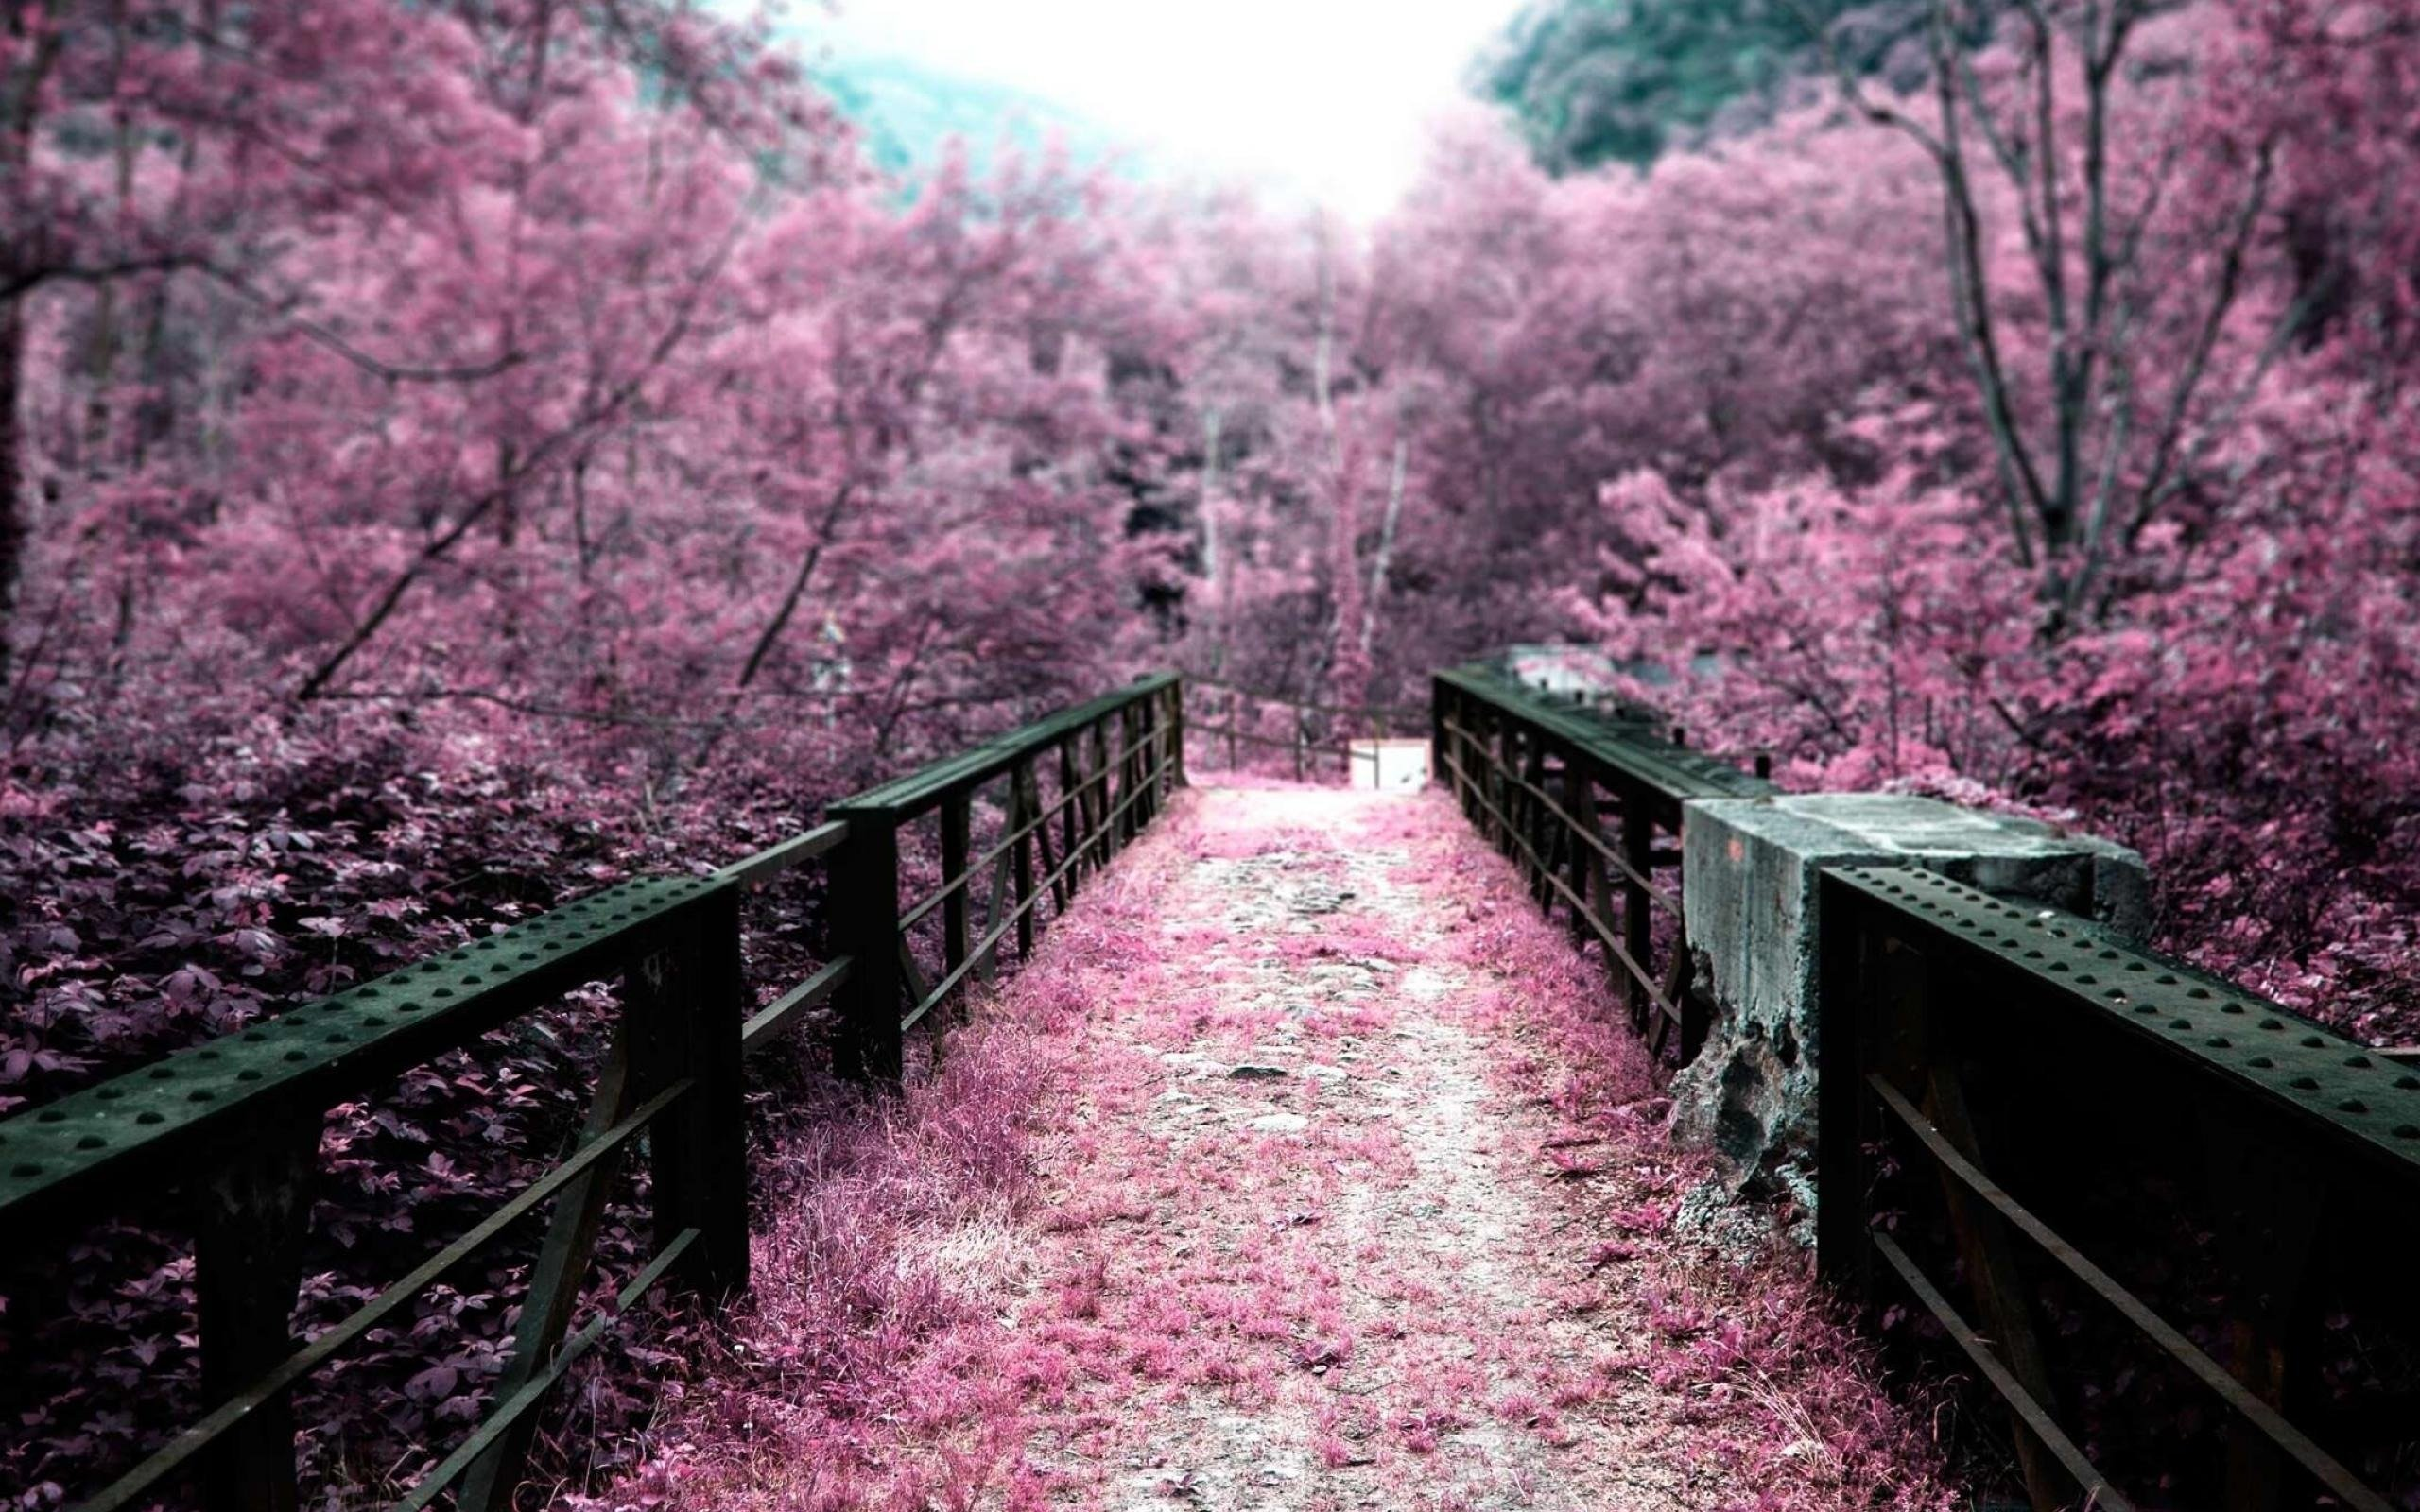 pink nature scenery wallpapers walljpegcom 2560x1600